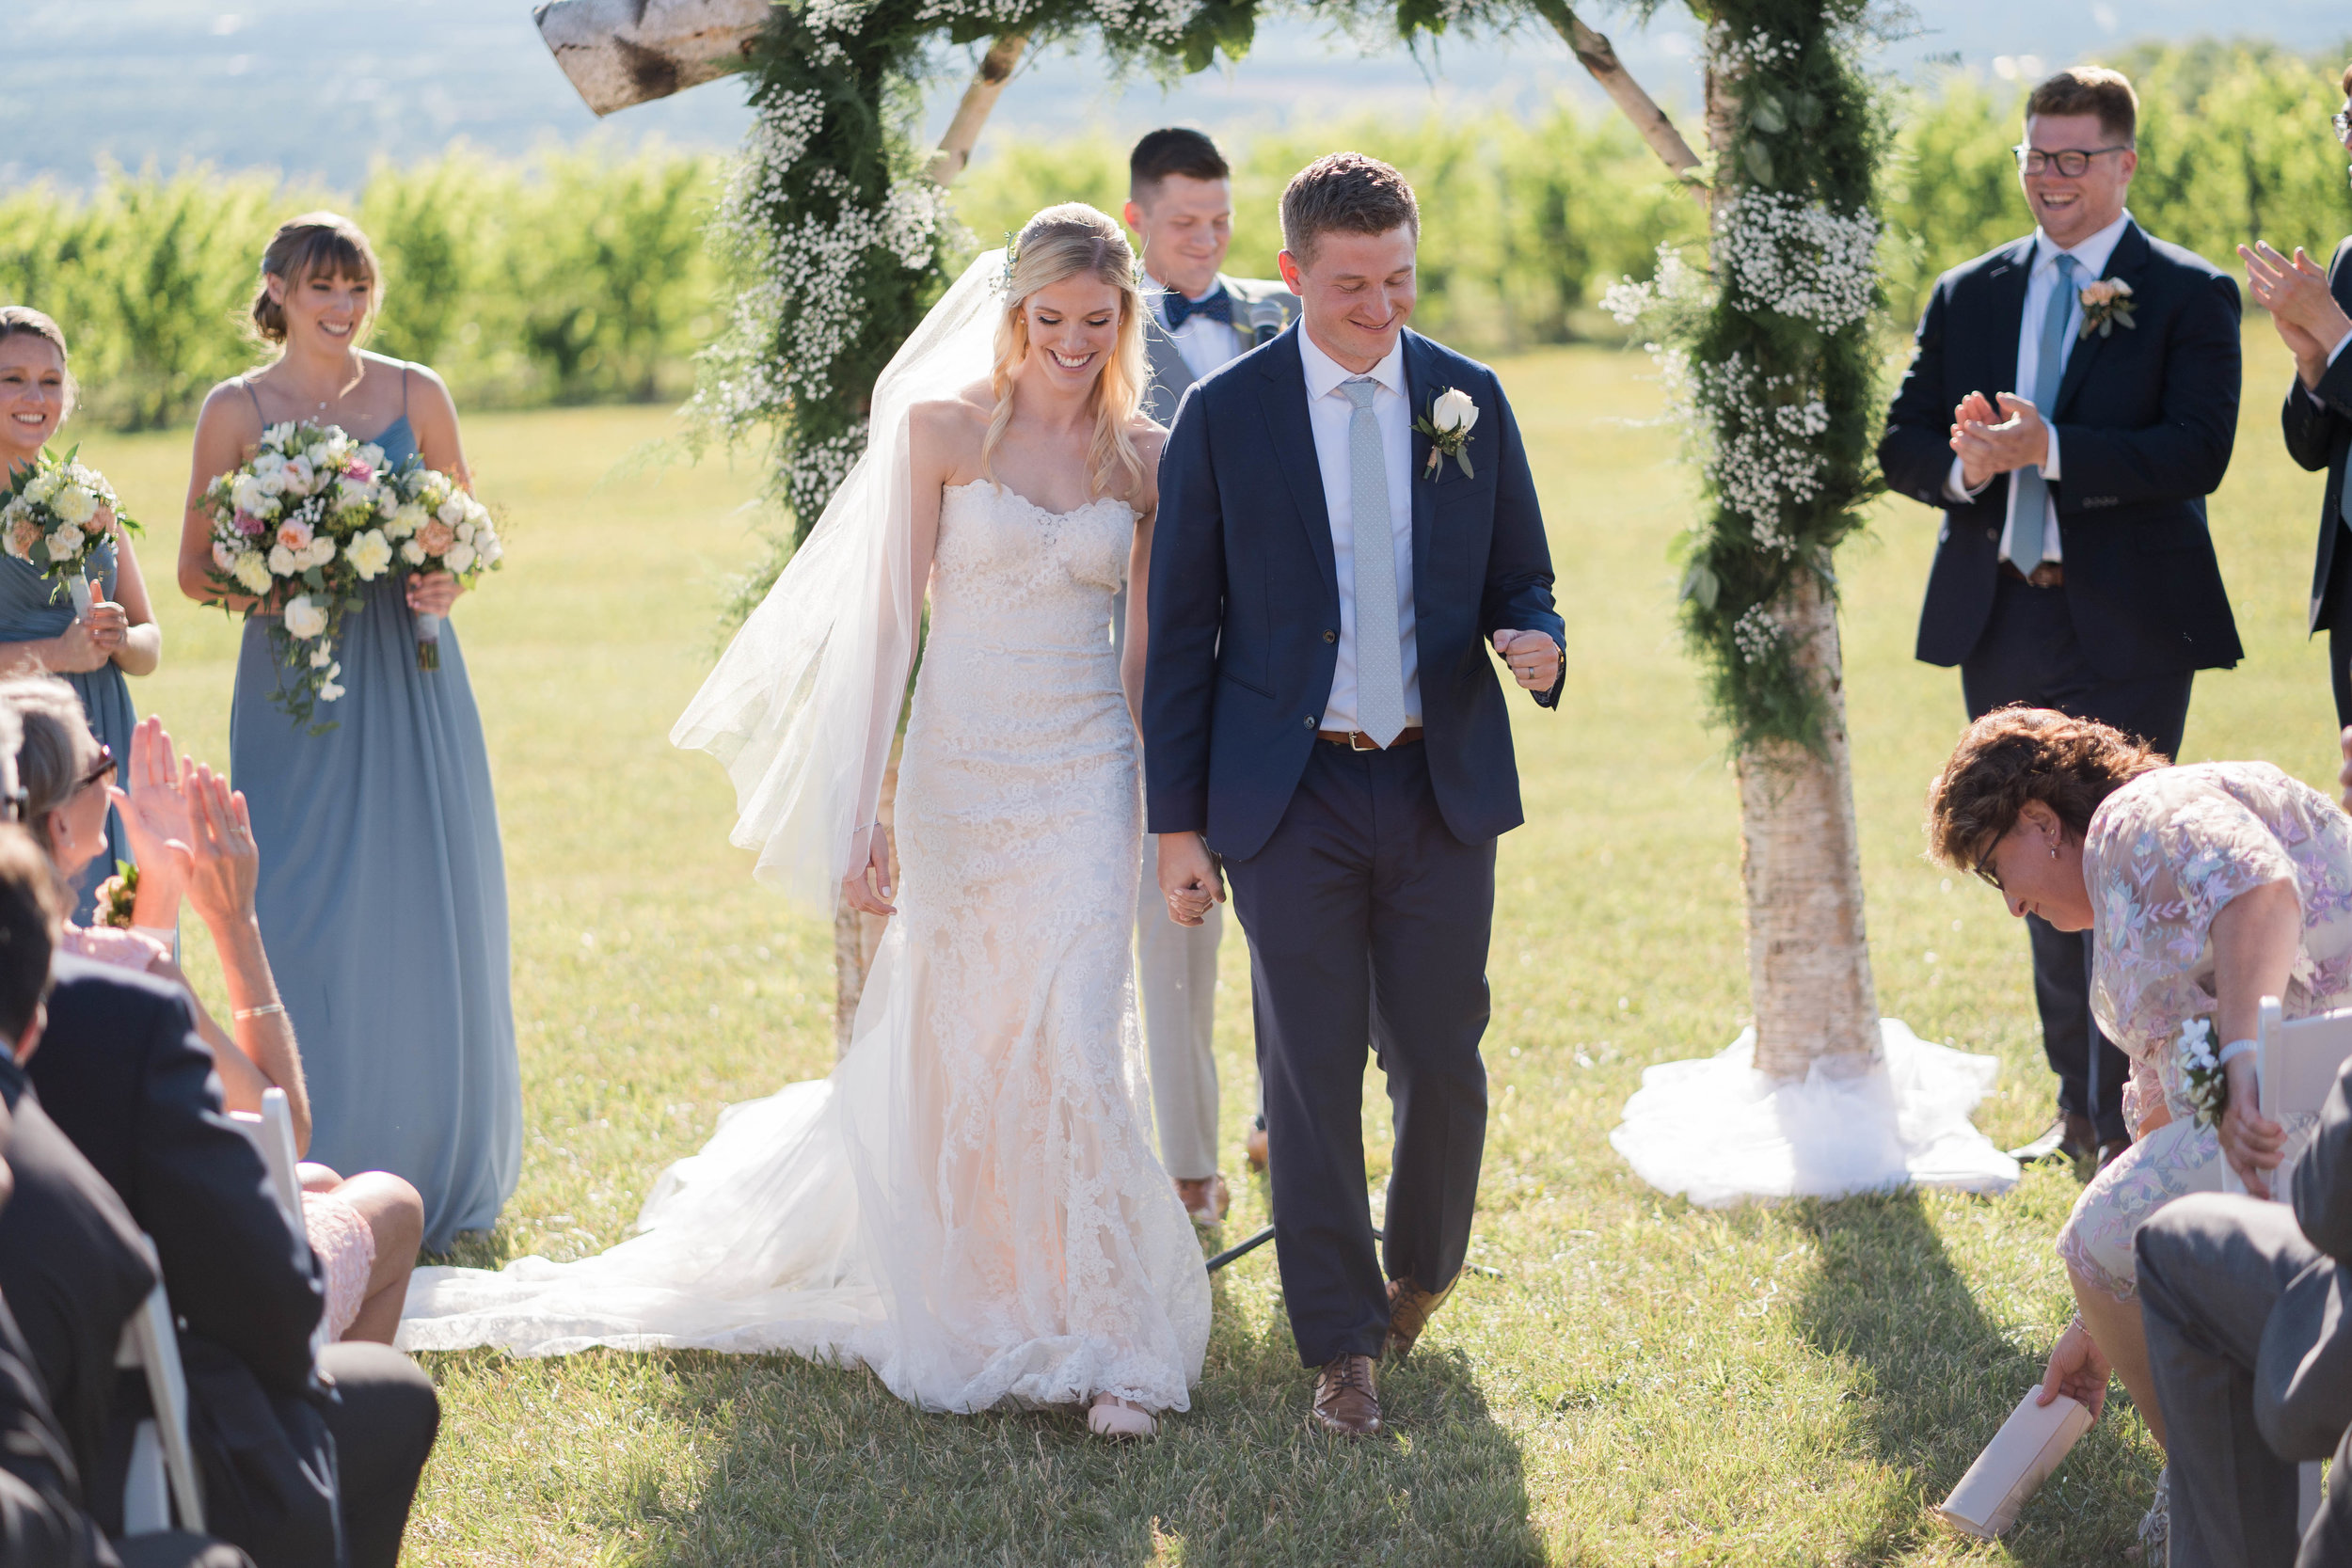 Wedding Photography at Wagner Vineyards Ginny Lee Cafe Finger Lakes by Stefan Ludwig Photography-63.jpg